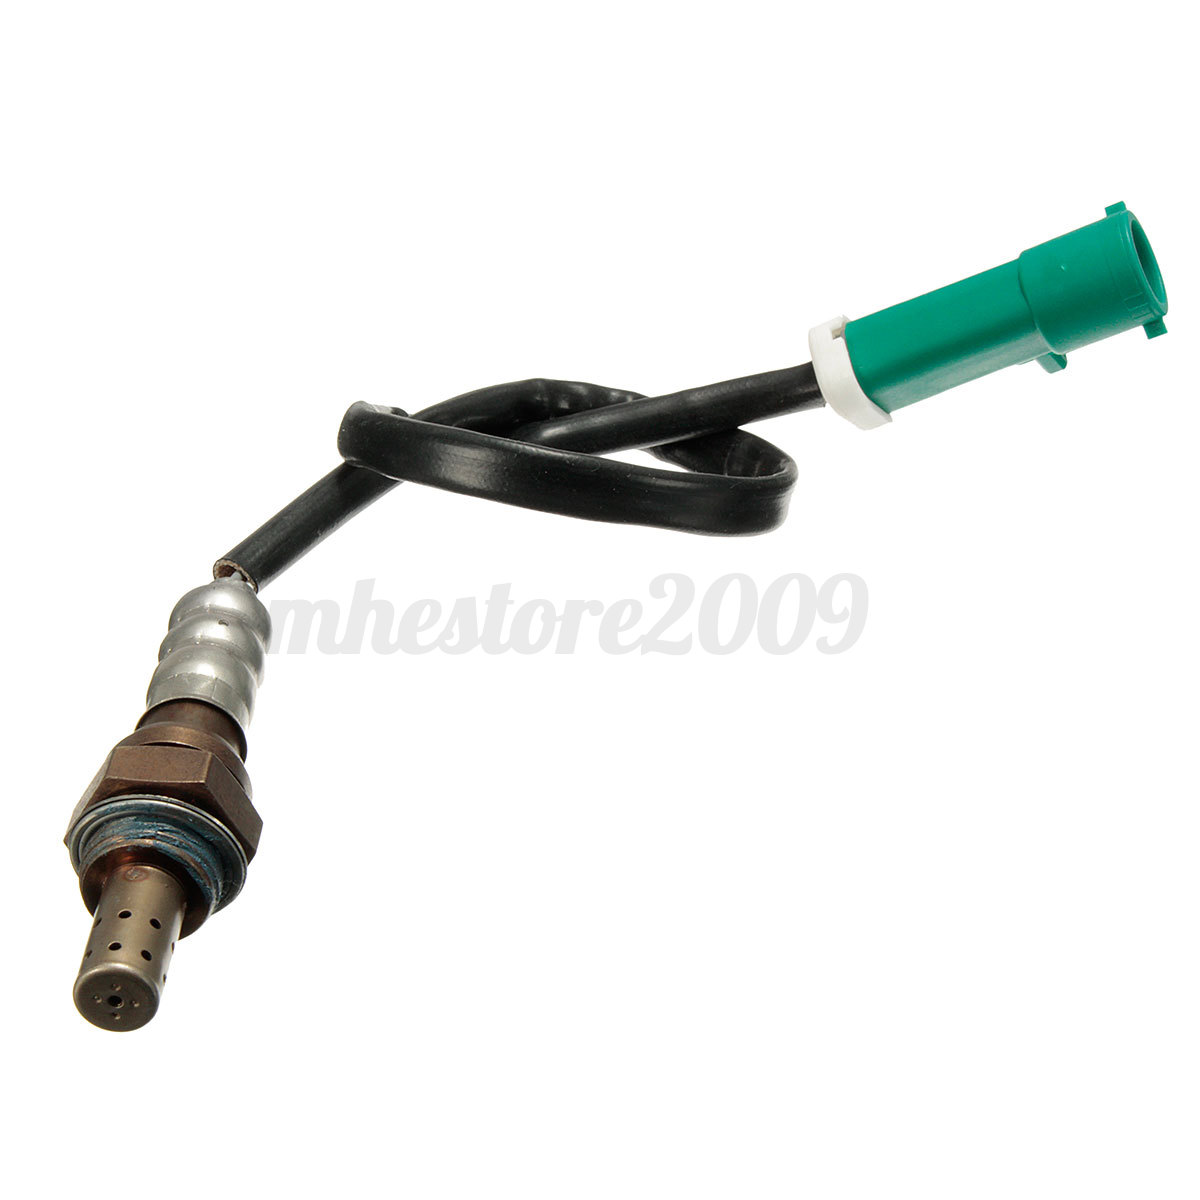 o2 sensor hook up Installing a 3-wire heated oxygen sensor the reason for this article is to explain how to properly wire it up first, you will need the parts.